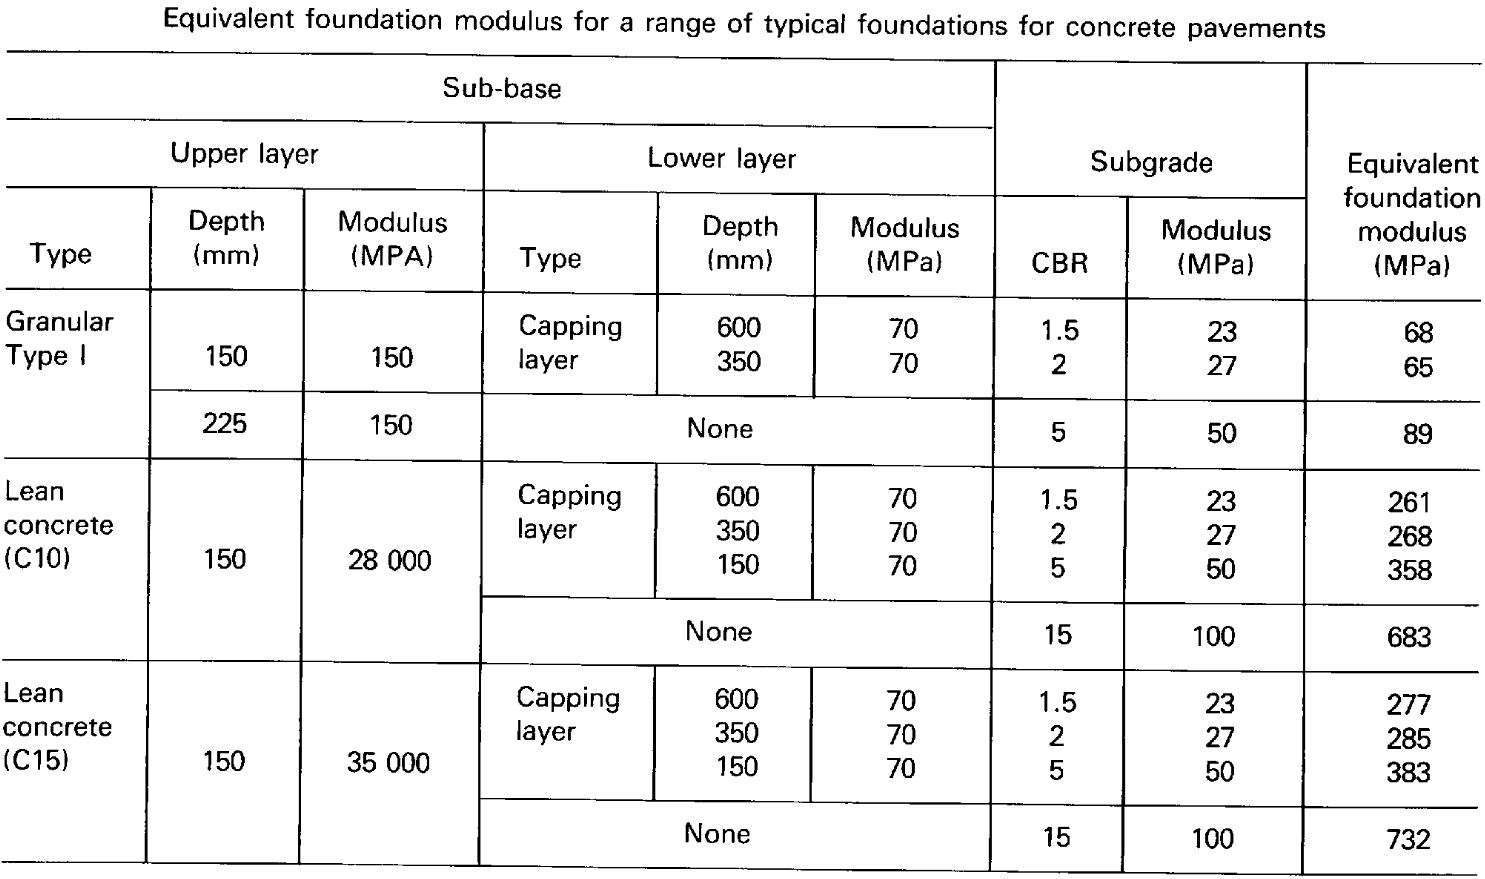 TRRL87 Method - Equivalent Foundation Modulus Table